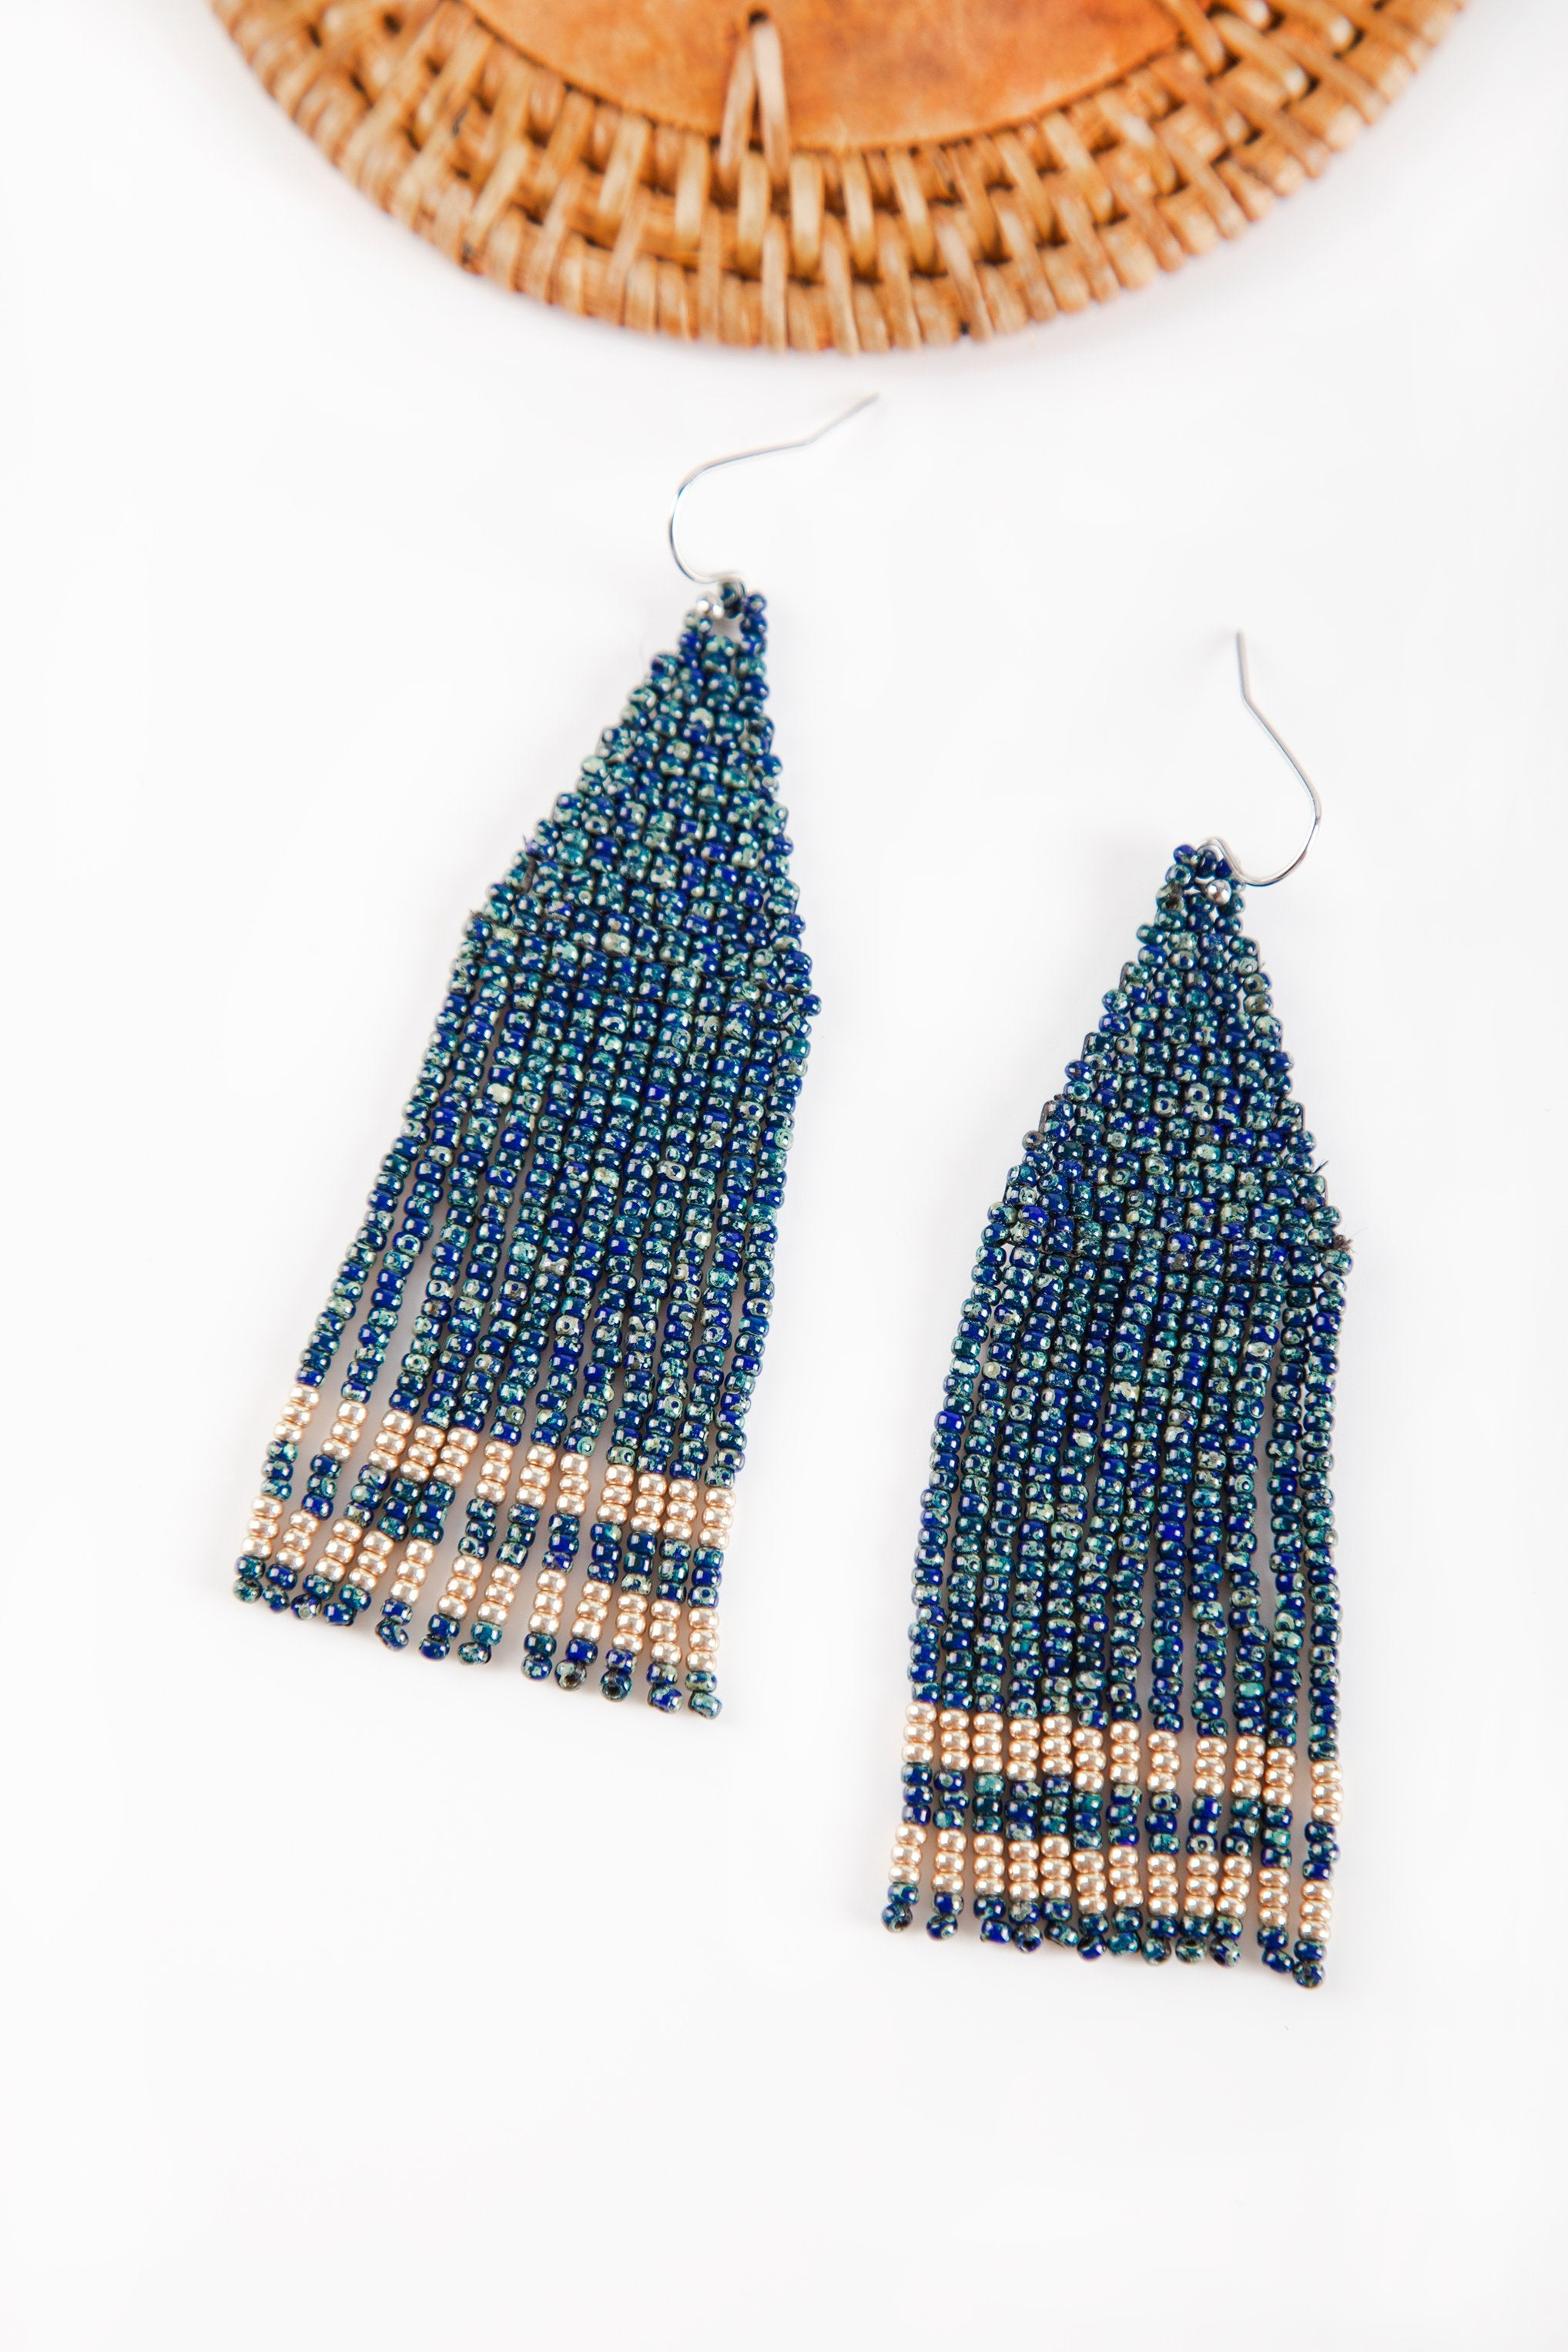 Zola Beaded Earrings - Midnight Blue with Gold - Our Barehands